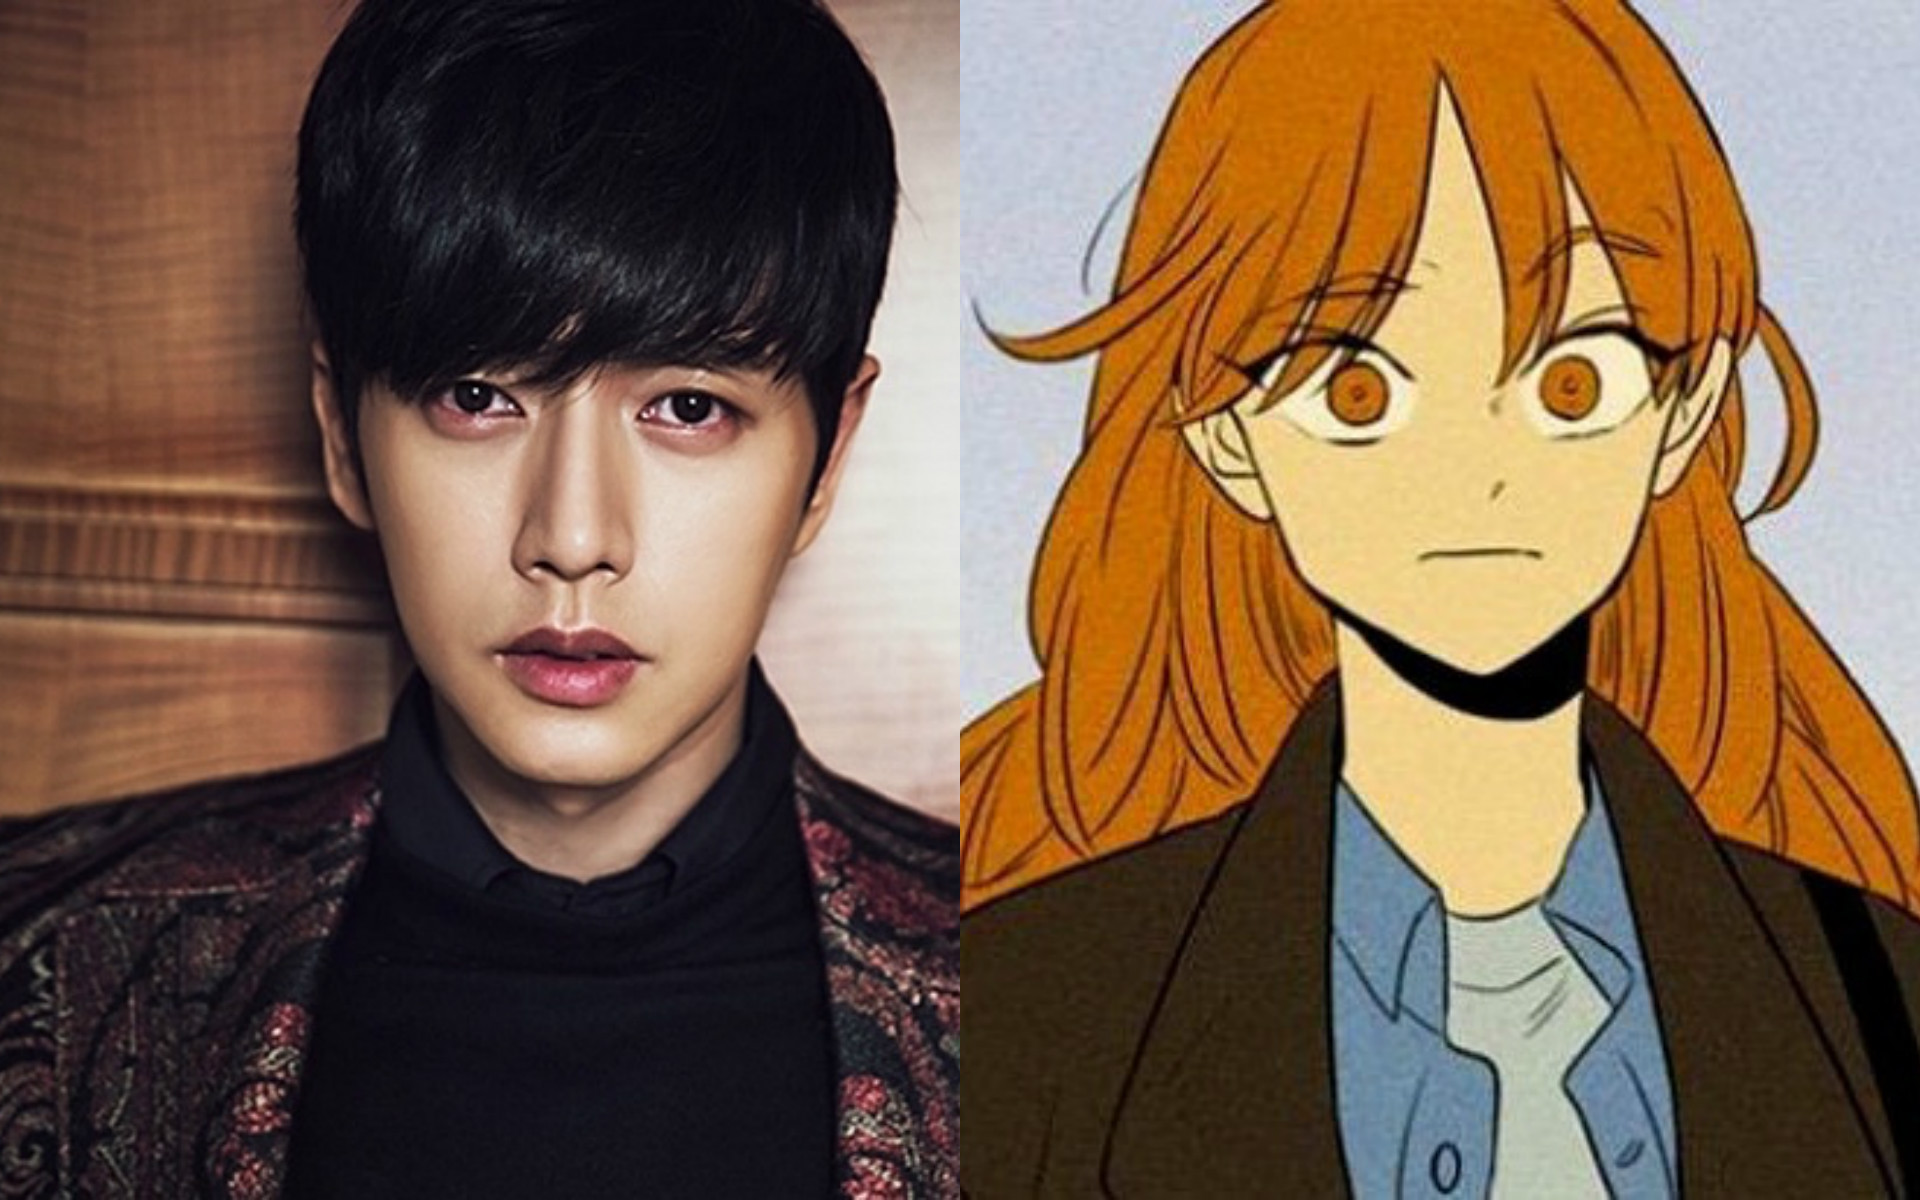 """Cheese in the Trap"" Producer Talks Progress In Casting Female Lead Opposite Park Hae Jin"